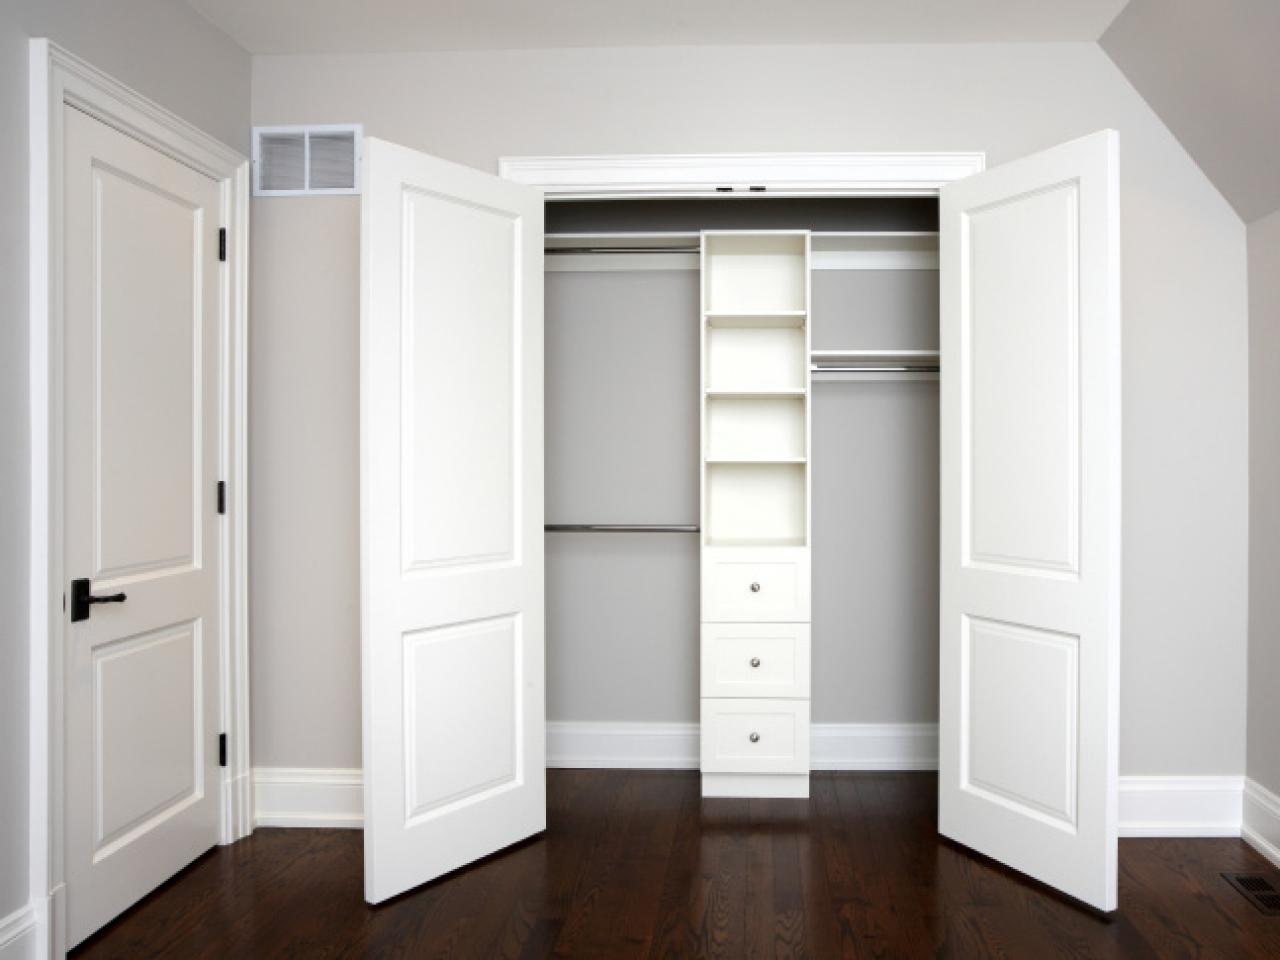 Best sliding closet doors for bedrooms sliding closet doors: design ideas and options iudqfnl